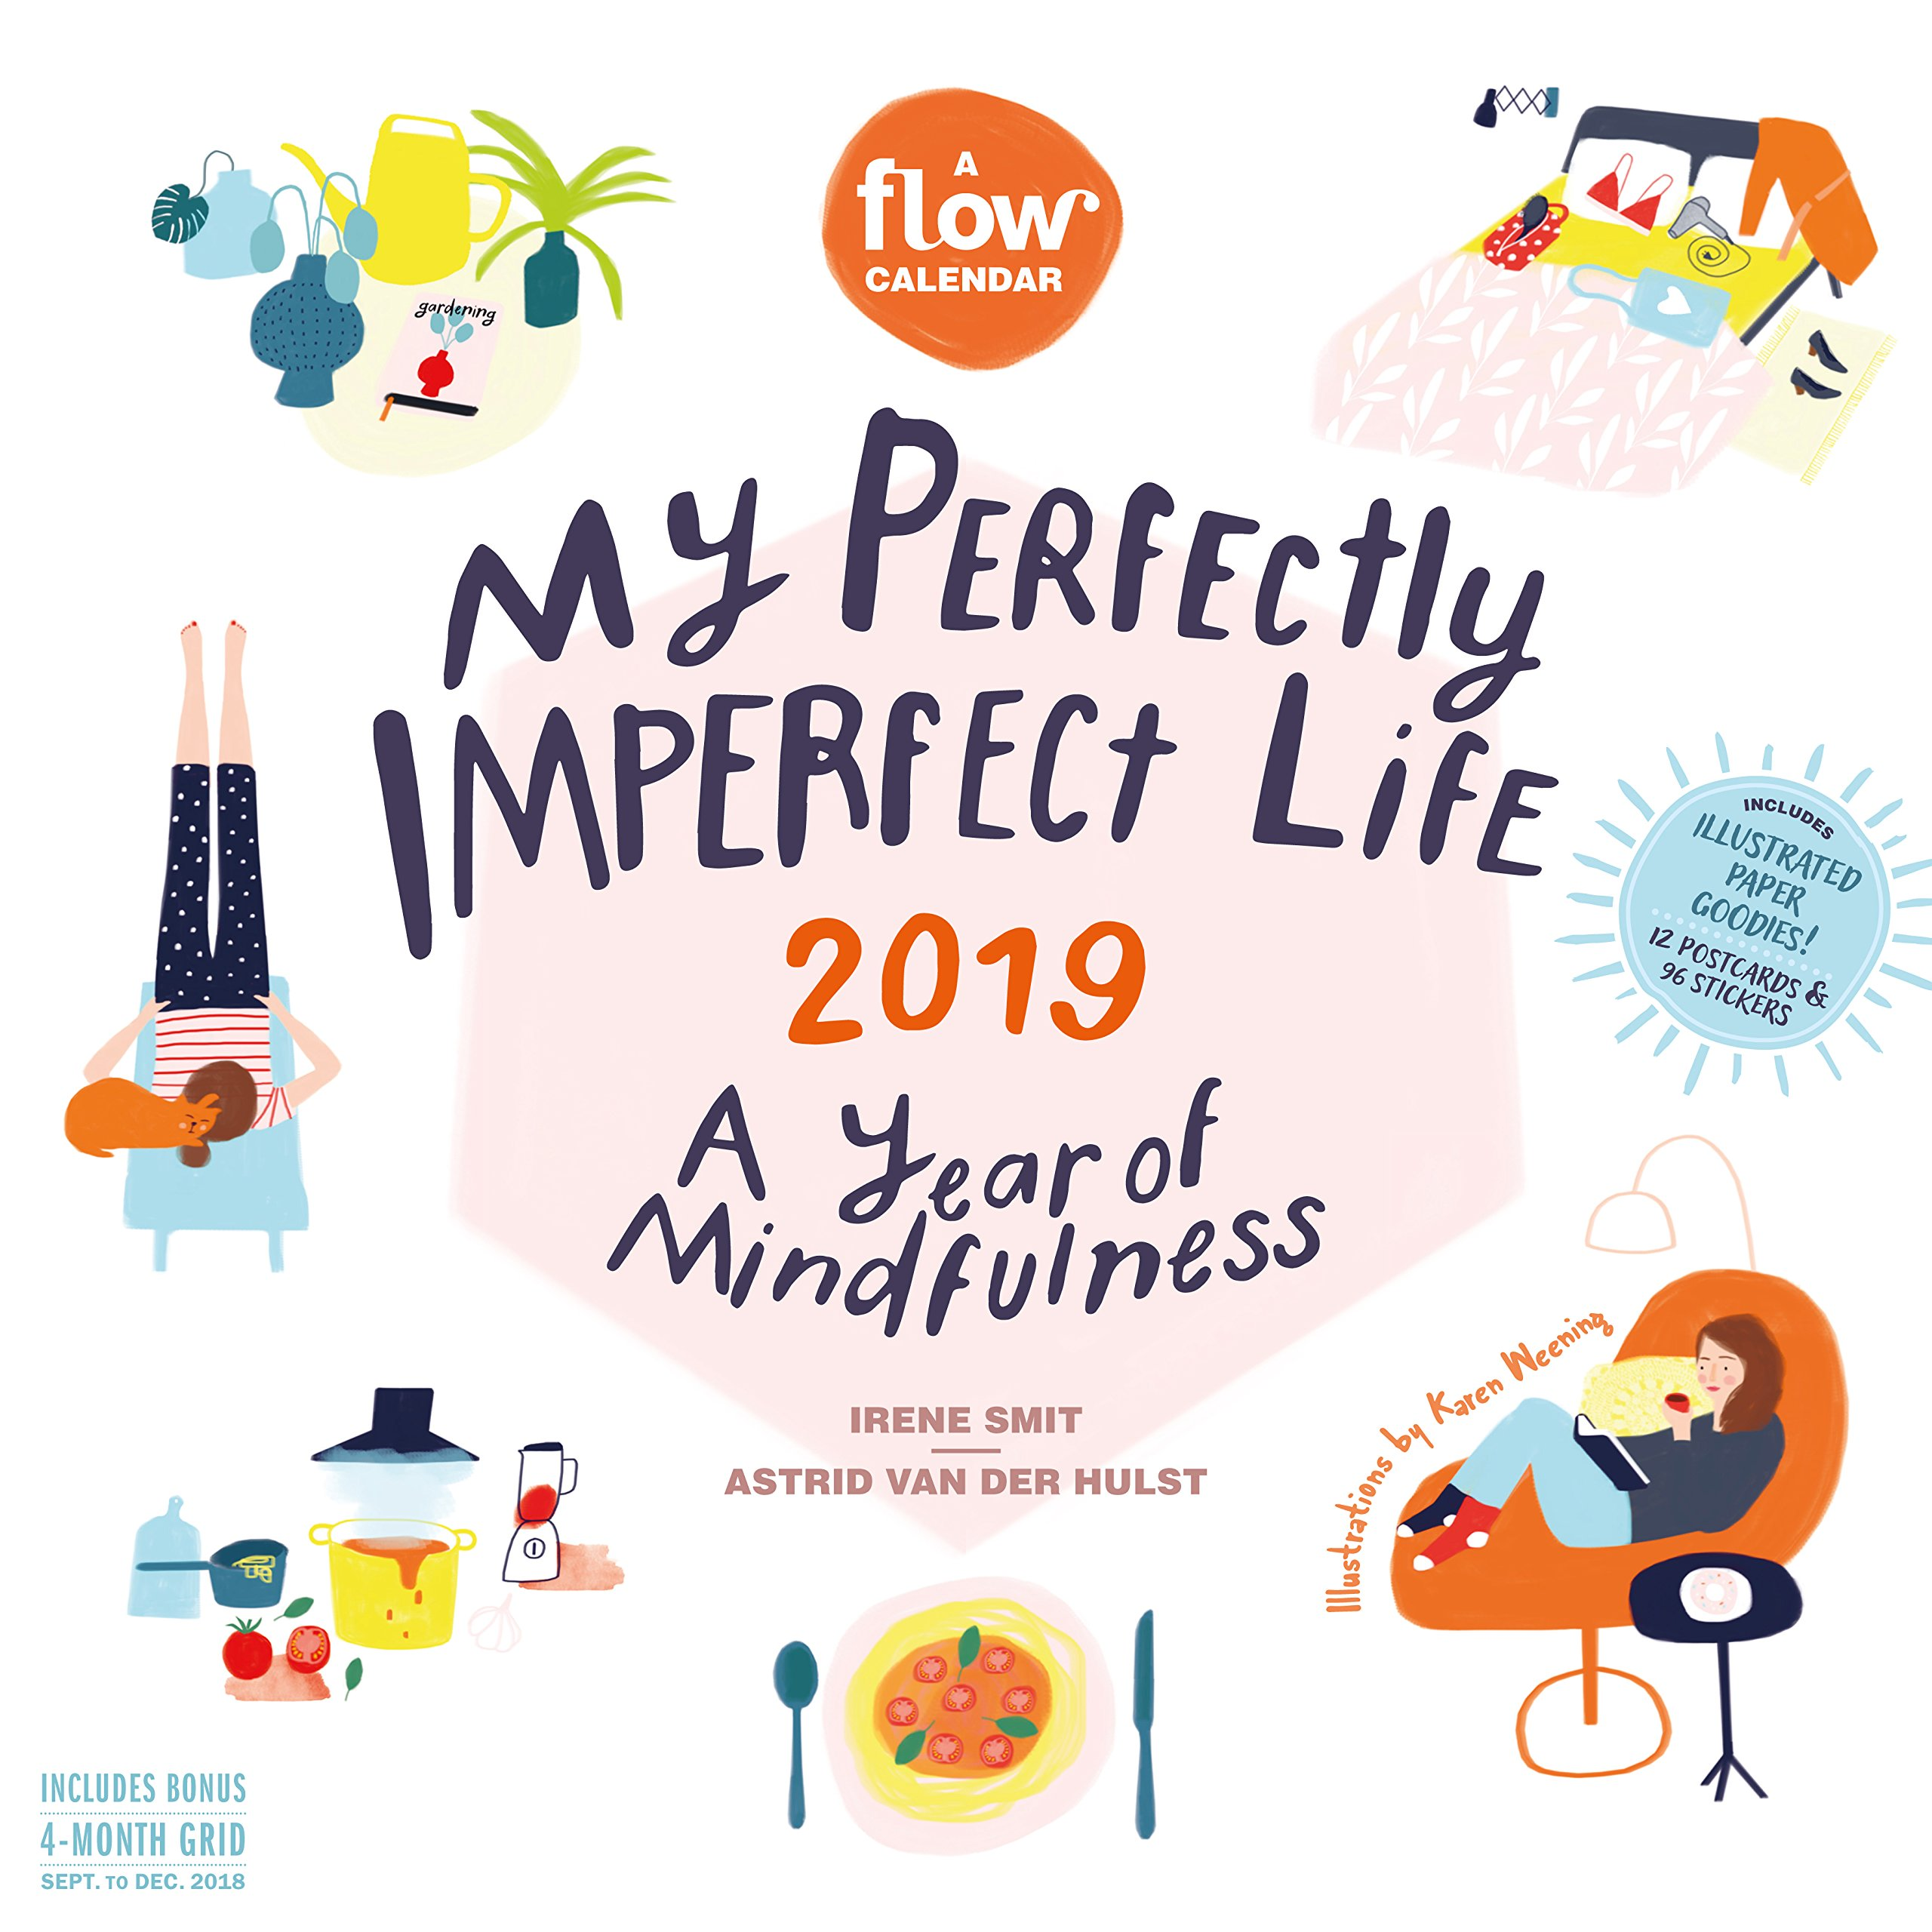 My Perfectly Imperfect Life 2019 Calendar: A Year of Mindfulness: Includes 12 Postcards & 96 Stickers (Anglais) Calendrier – Calendrier mural, 8 août 2018 Workman Publishing 1523505001 BODY NON-CLASSIFIABLE